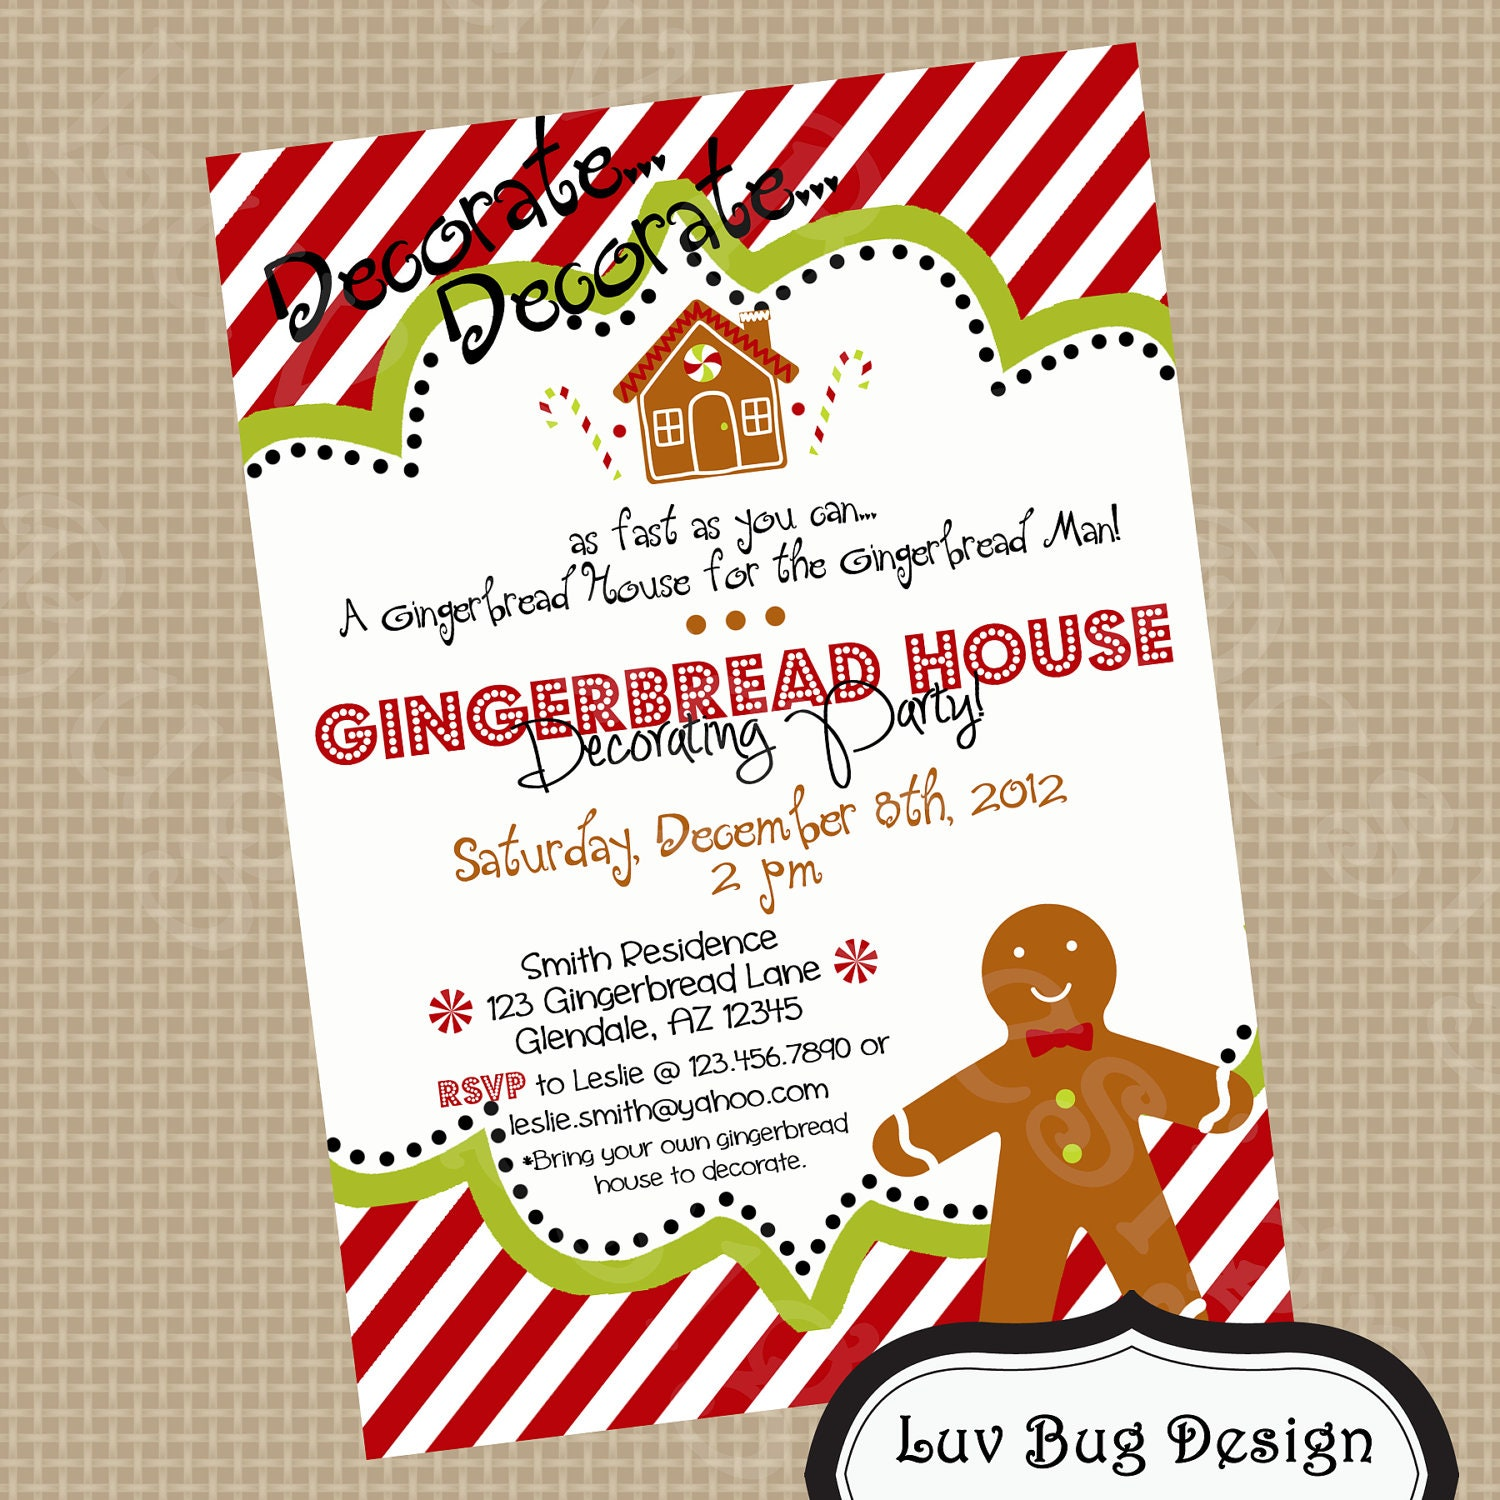 Gingerbread House Party Invitations karate instructor sample – Gingerbread Party Invitations